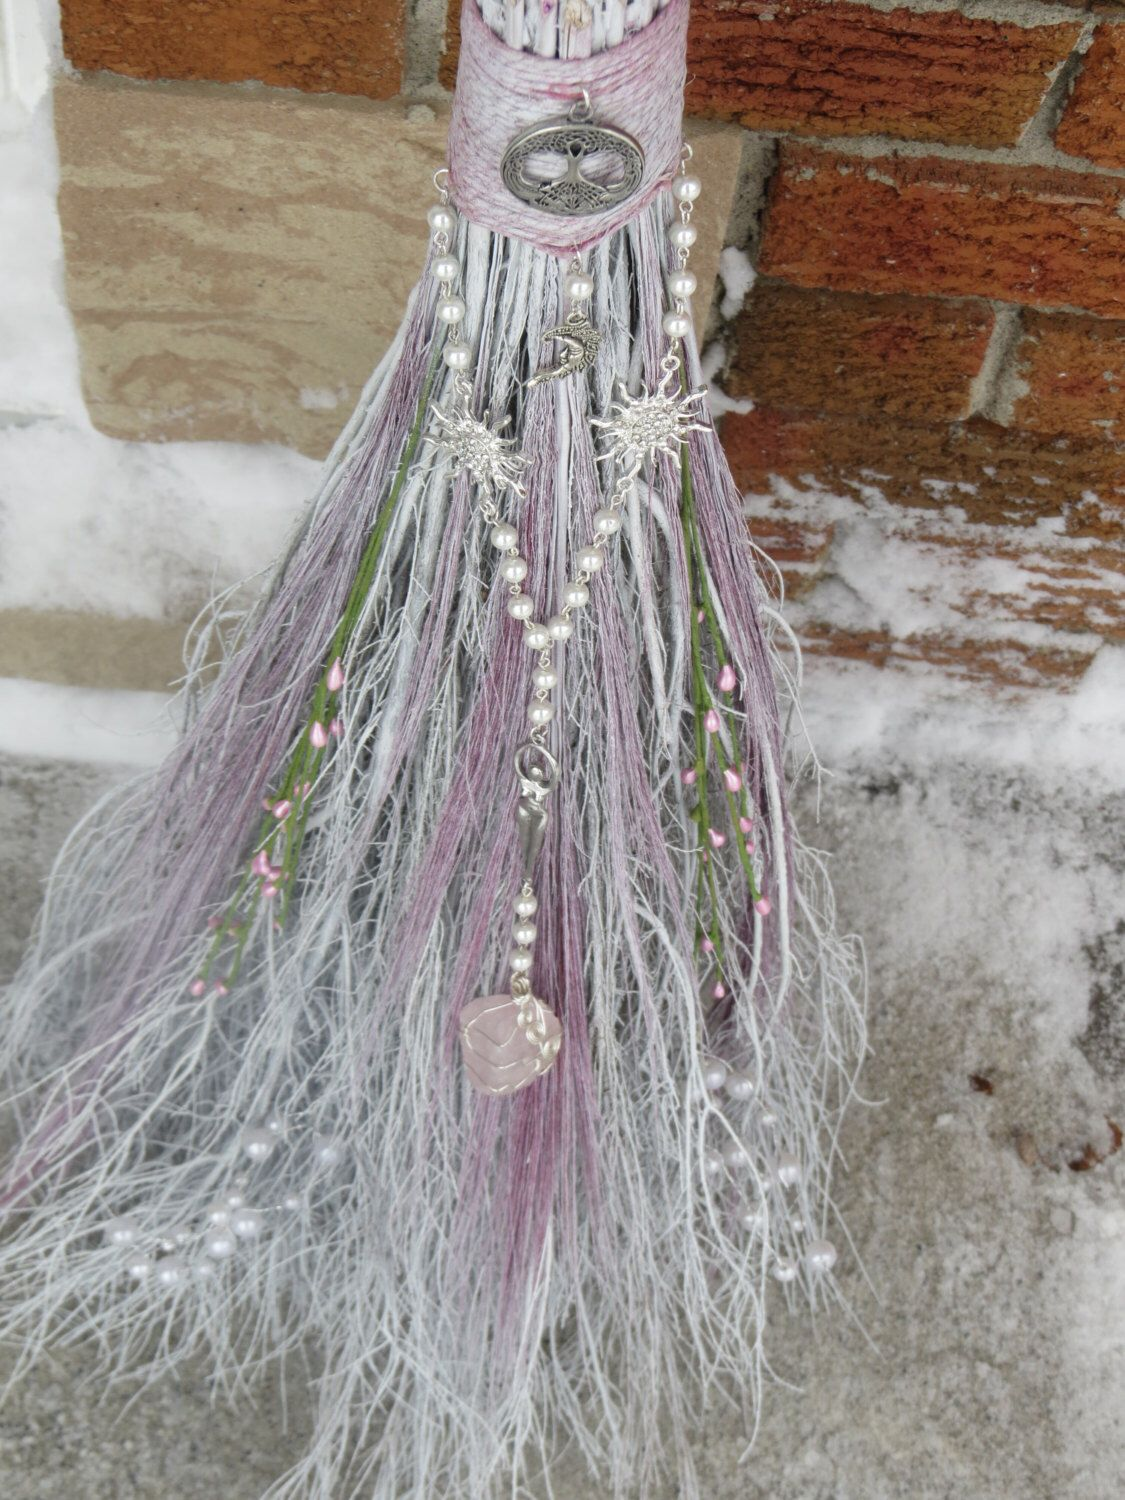 White Handfasting Broom for Pagan Wedding, Wiccan Wedding, Jumping the Broom, Pagan Handfasting ...